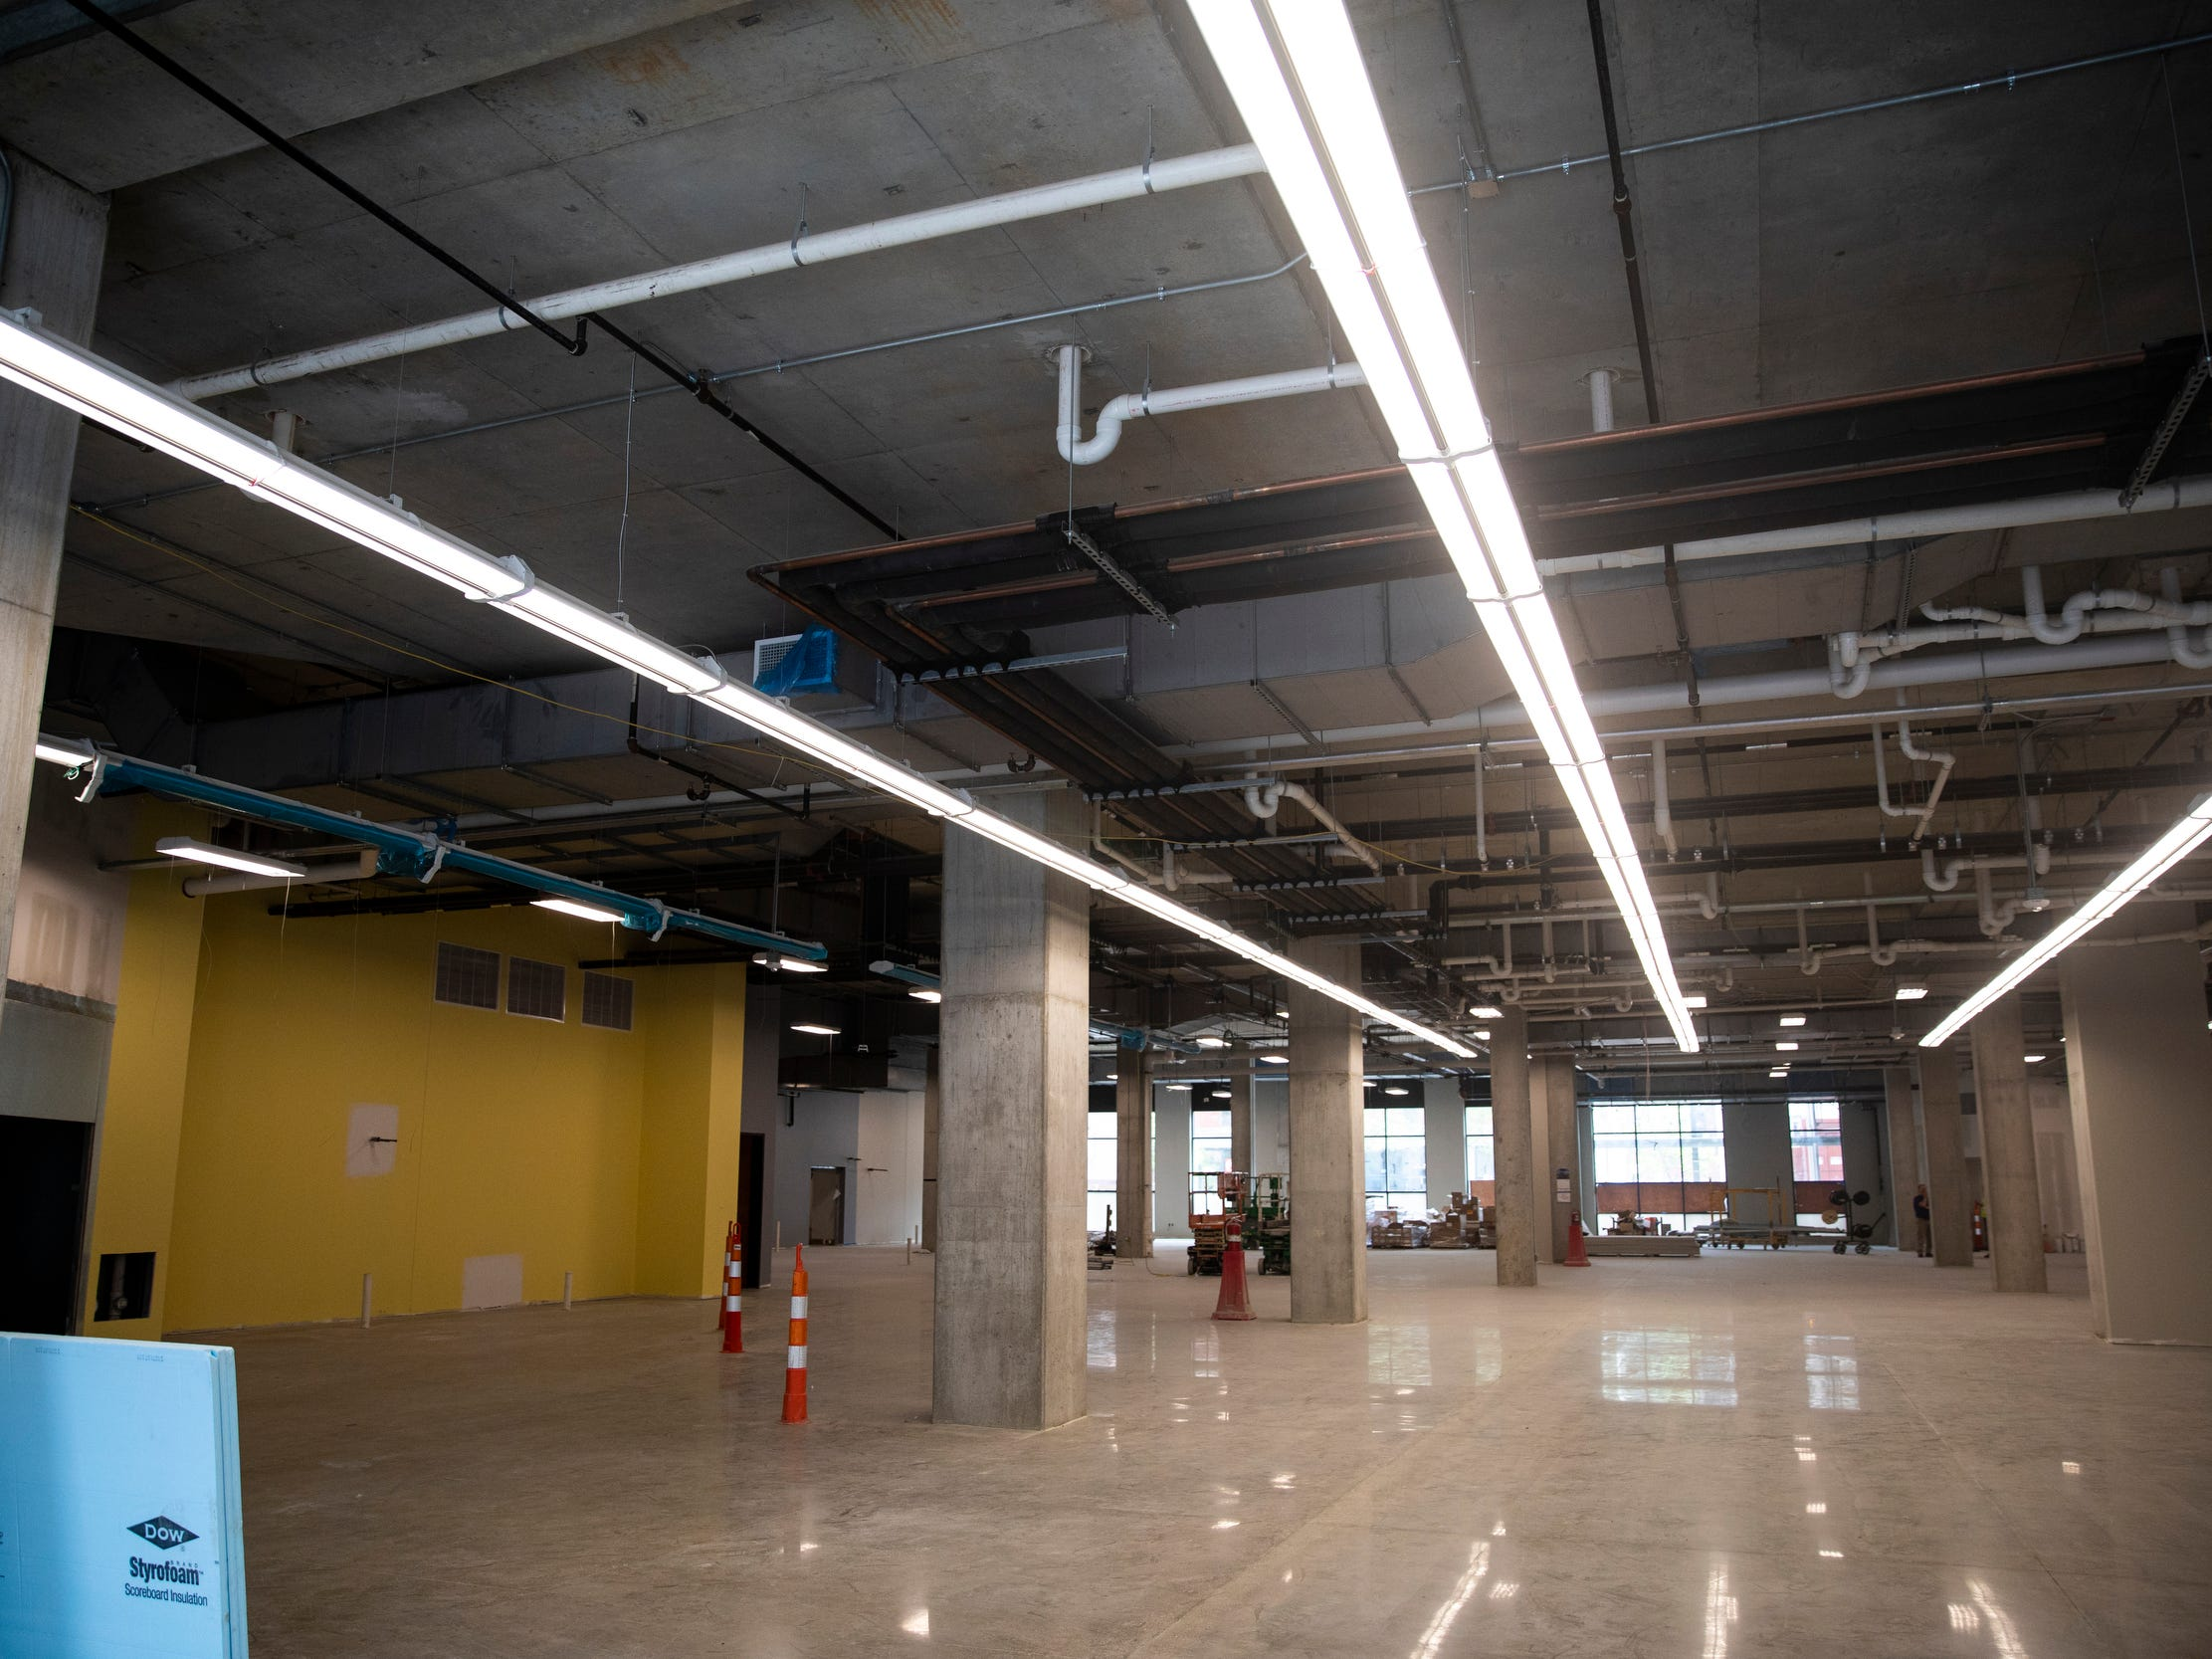 Kroger will open their new space on the corner of Walnut Street and Court Street in September. There is more than 50,000 square feet between the two floors.